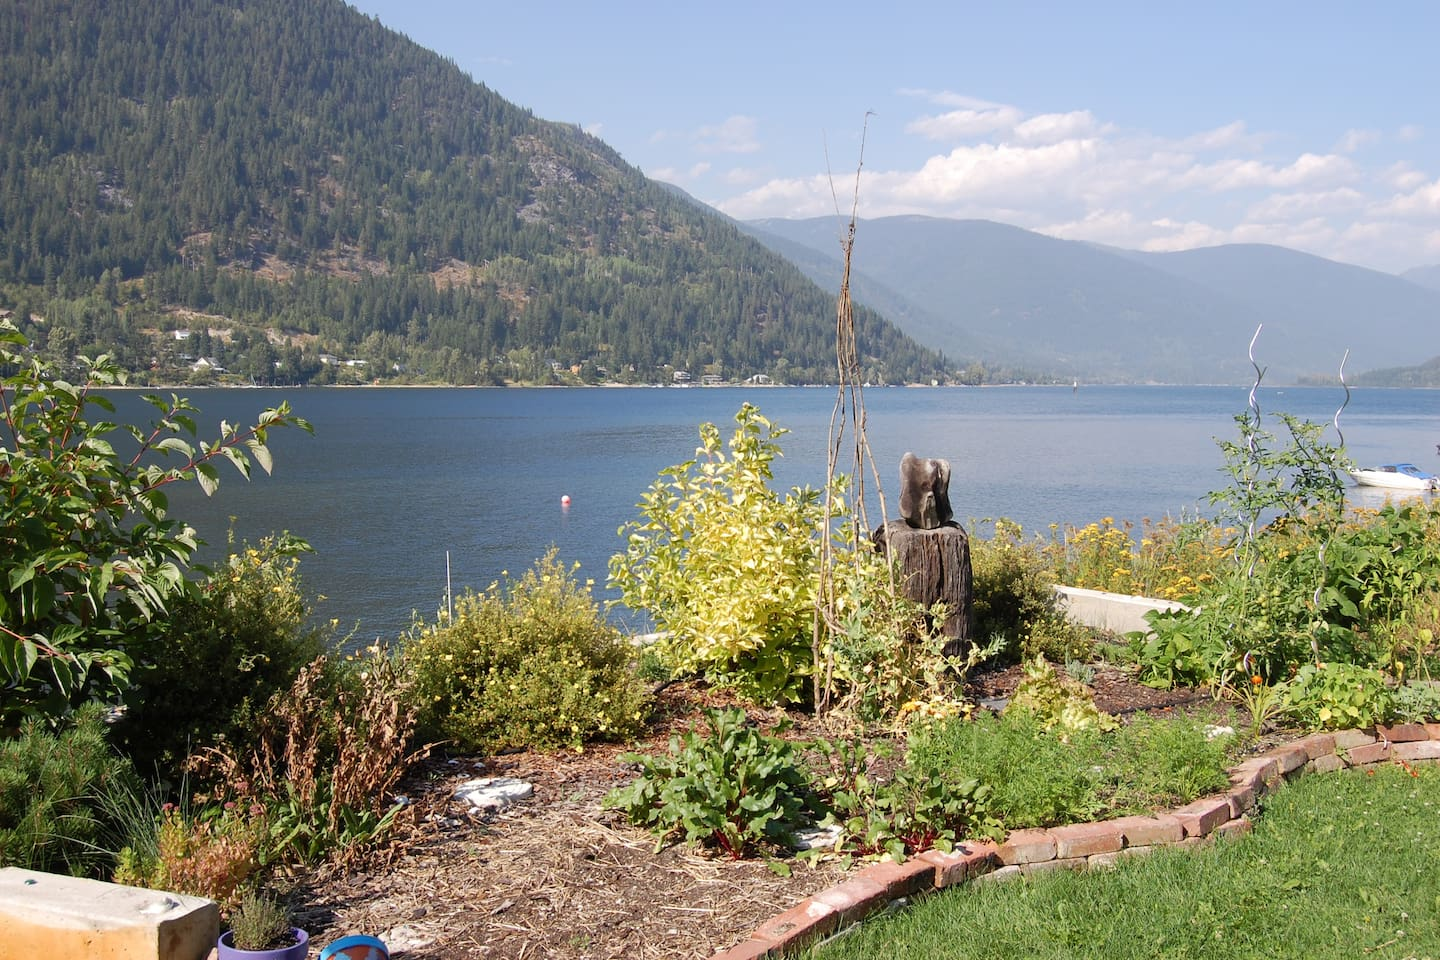 View from garden looking north up Kootenay Lake.